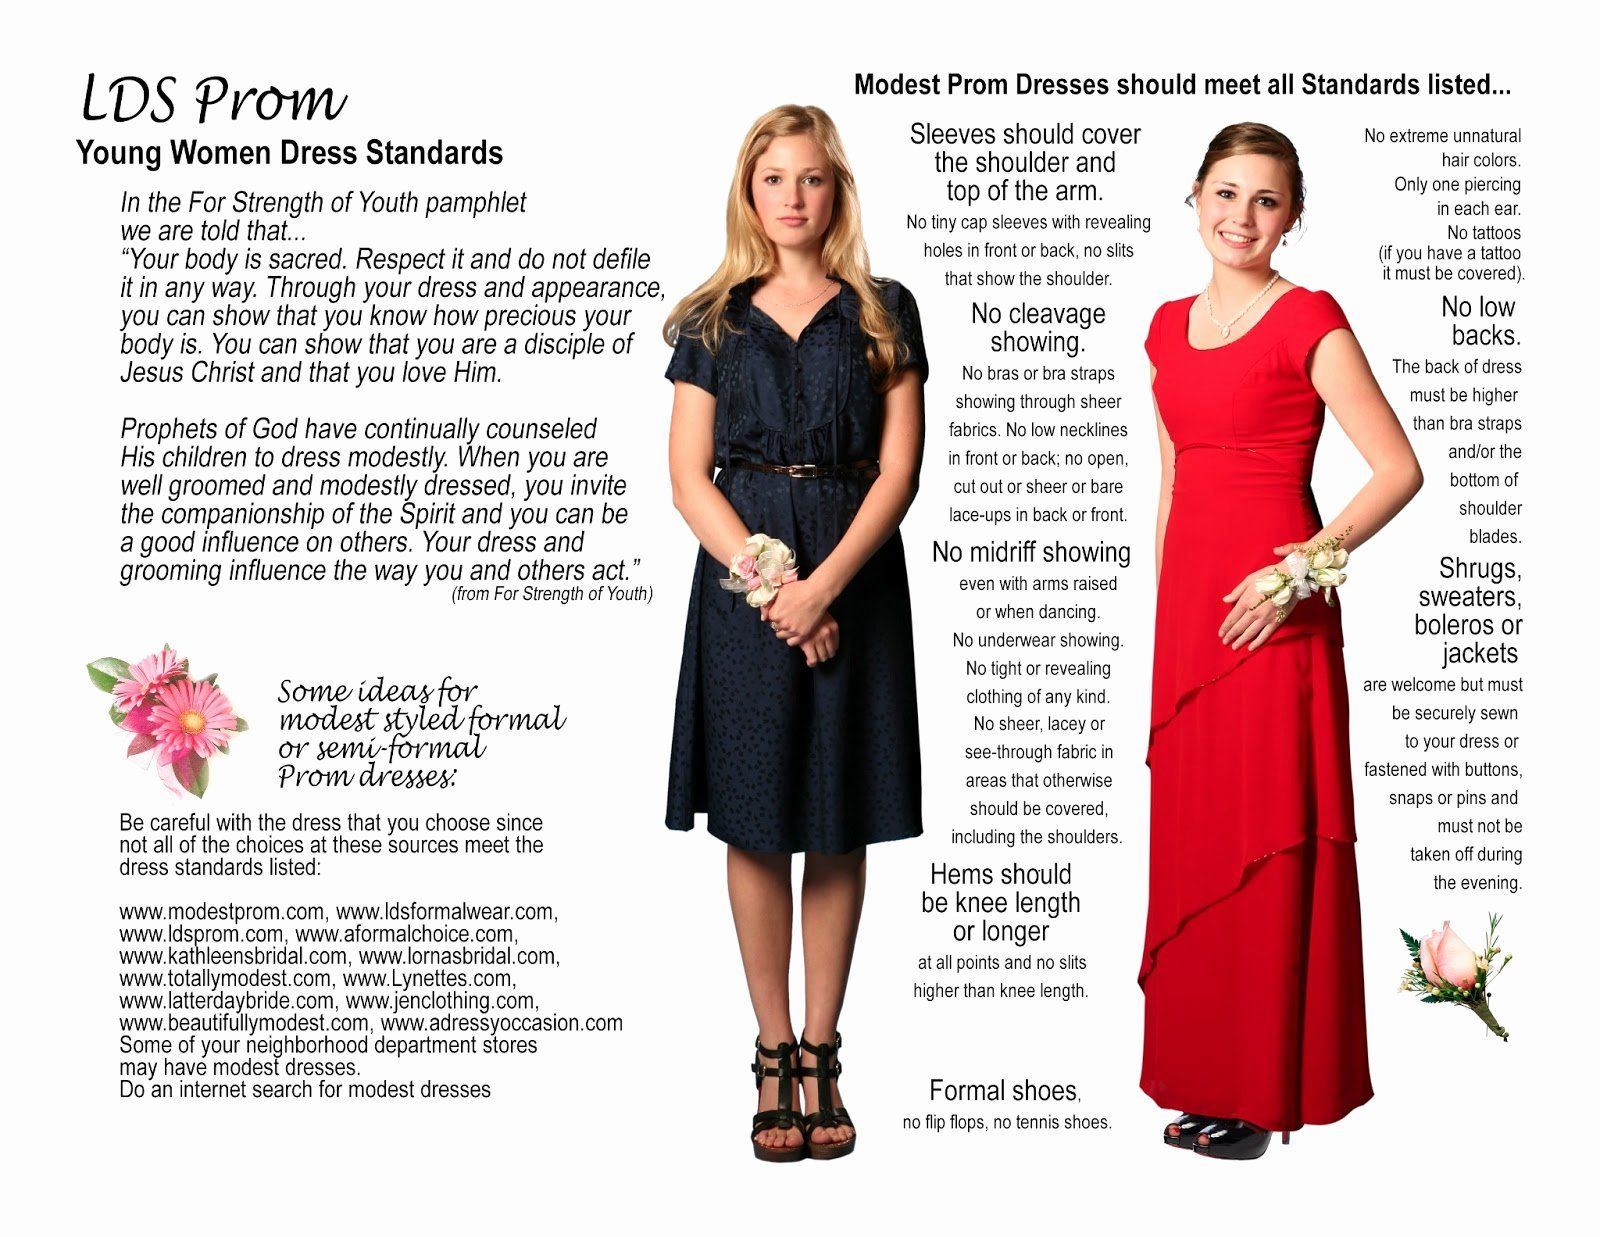 Lds Youth Permission Slips Beautiful Lds Prom the Petersen Automotive Museum January 2014